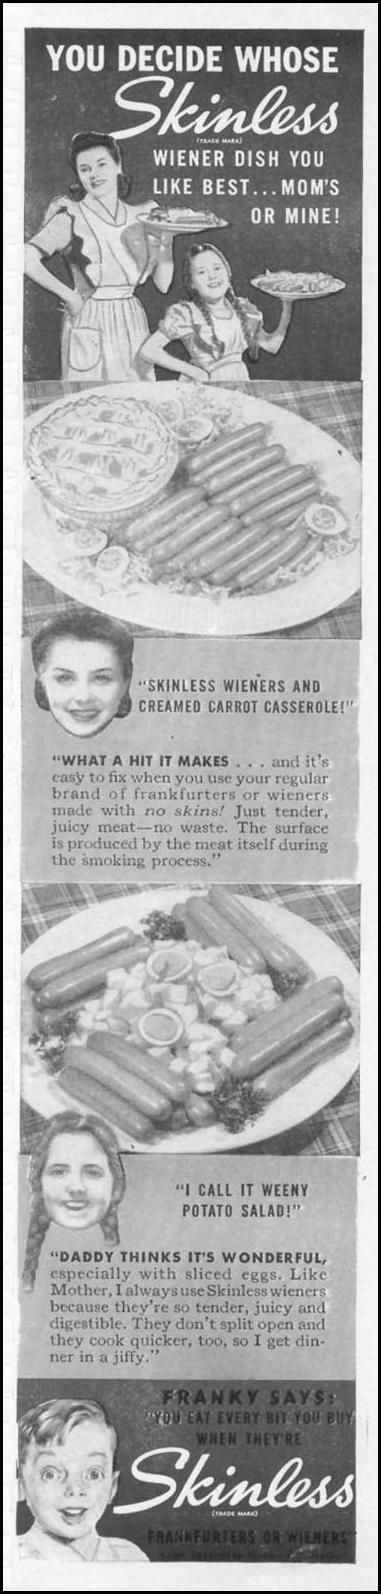 SKINLESS FRANKS WOMAN'S DAY 05/01/1941 p. 3